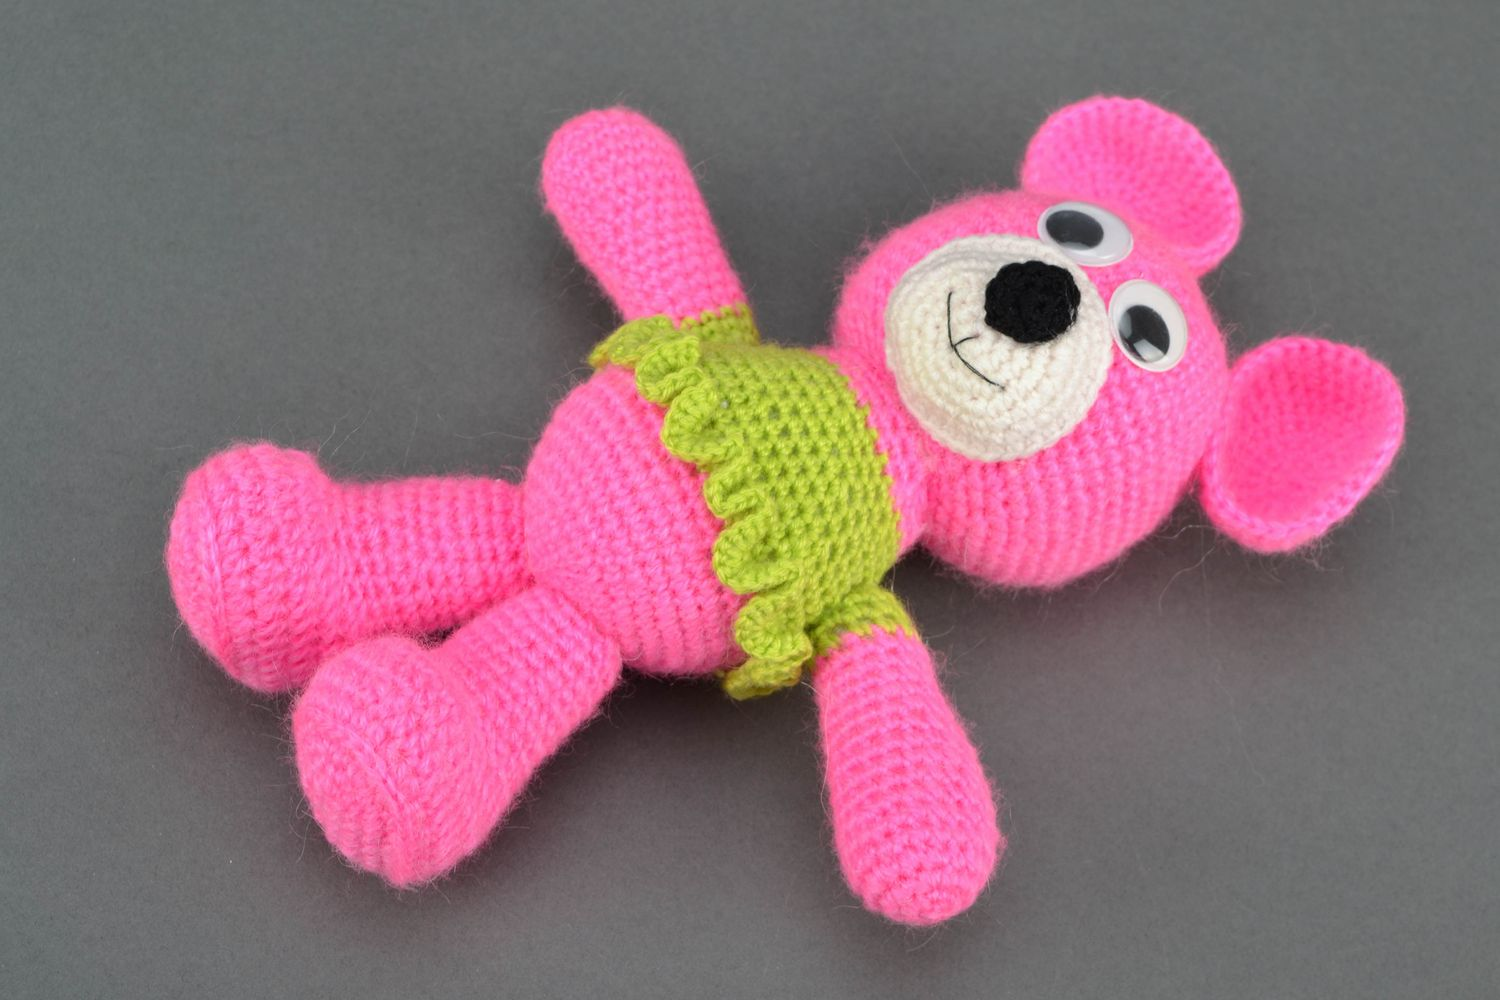 Soft crochet toy Pink Bear in Jacket photo 1